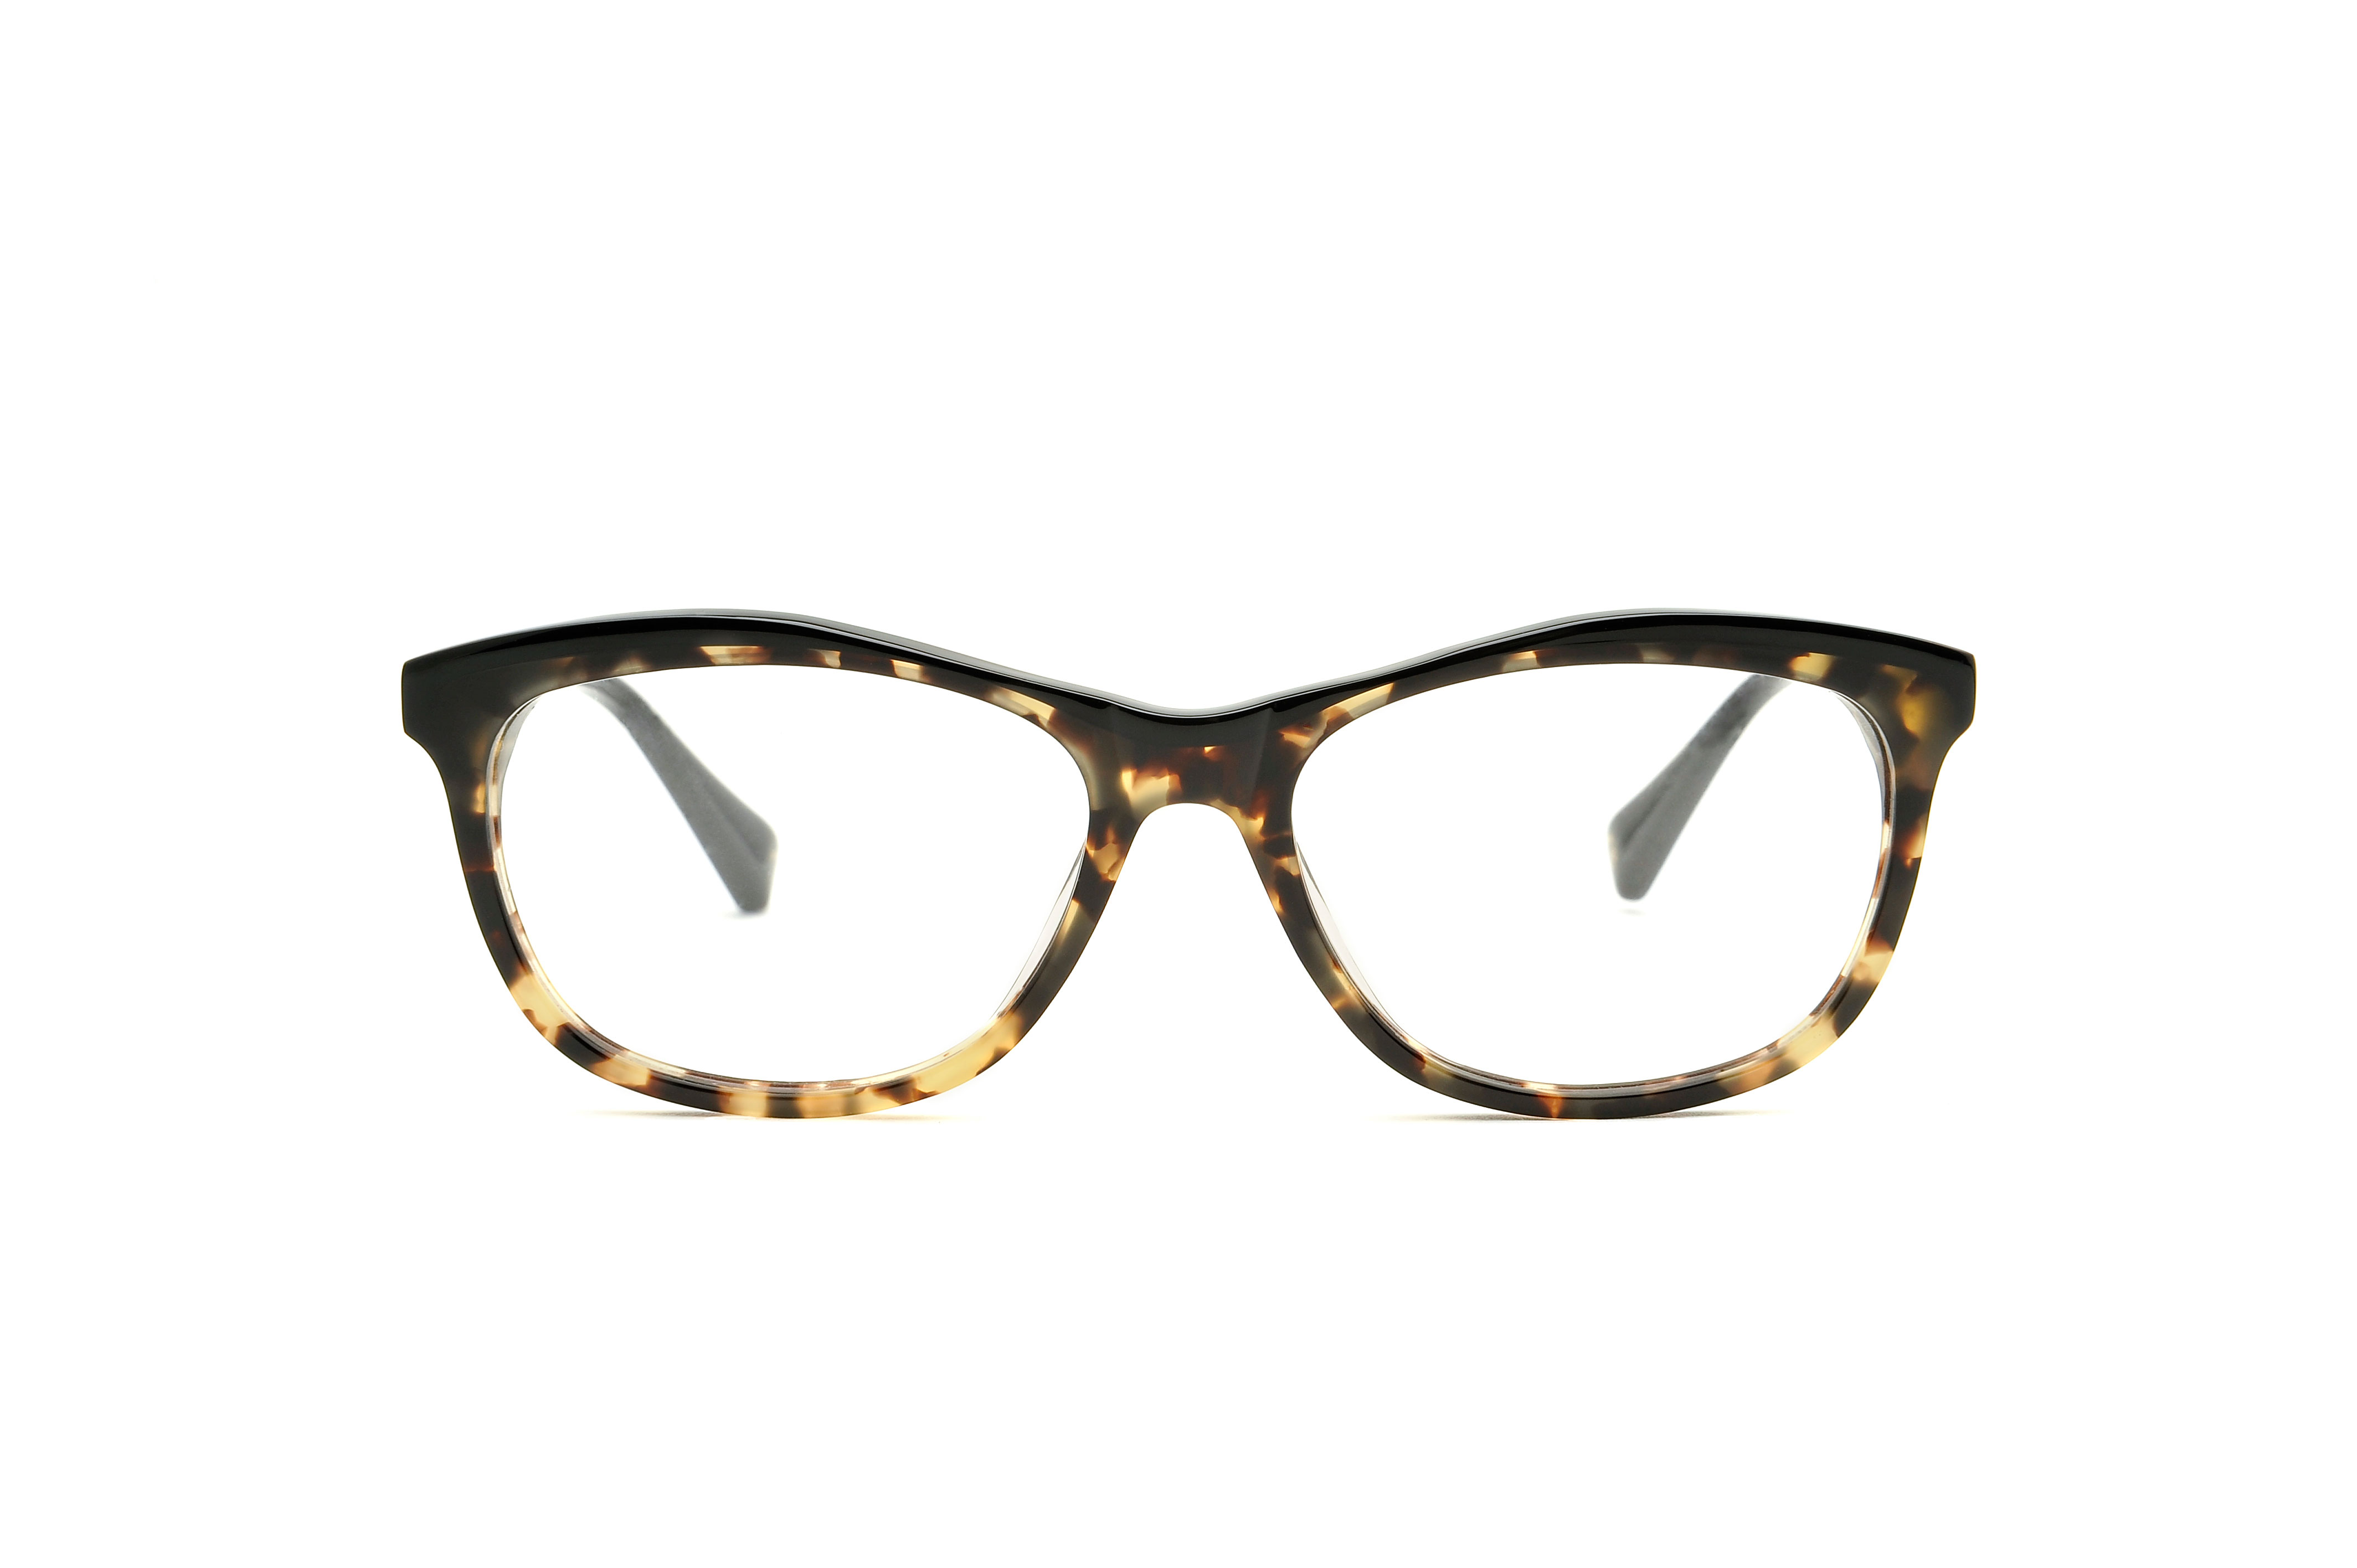 Vivian acetate cat eye tortoise sunglasses by GIGI Studios